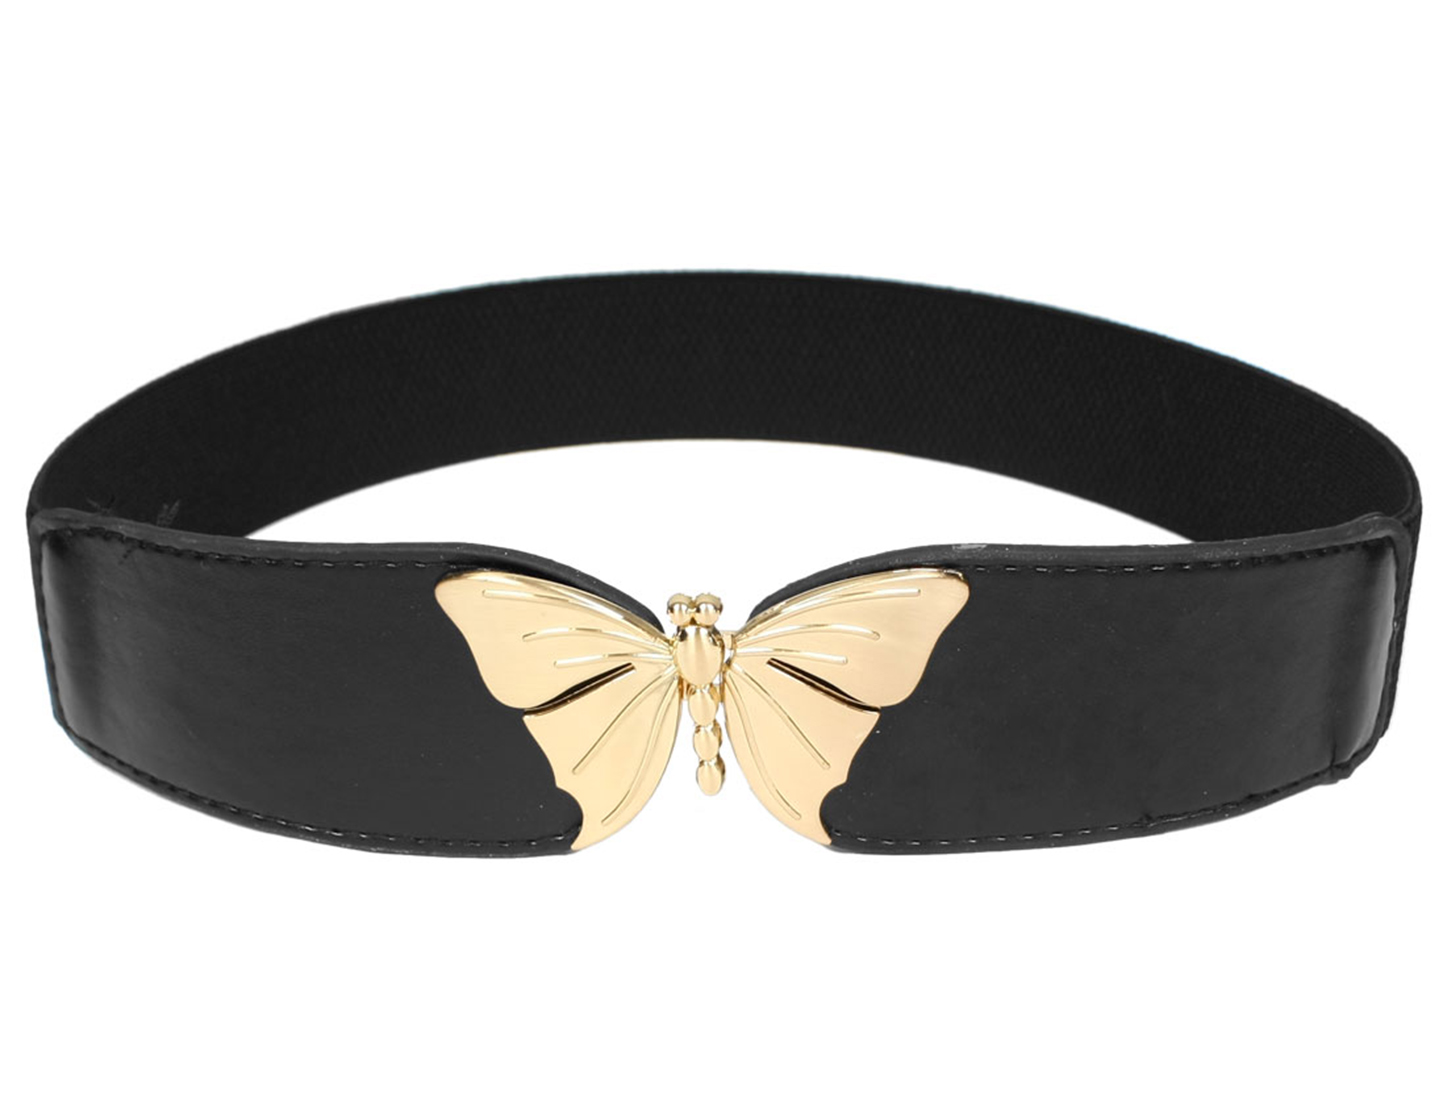 Butterfly Shape Metal Interlocking Buckle Waist Belt Waistband Black